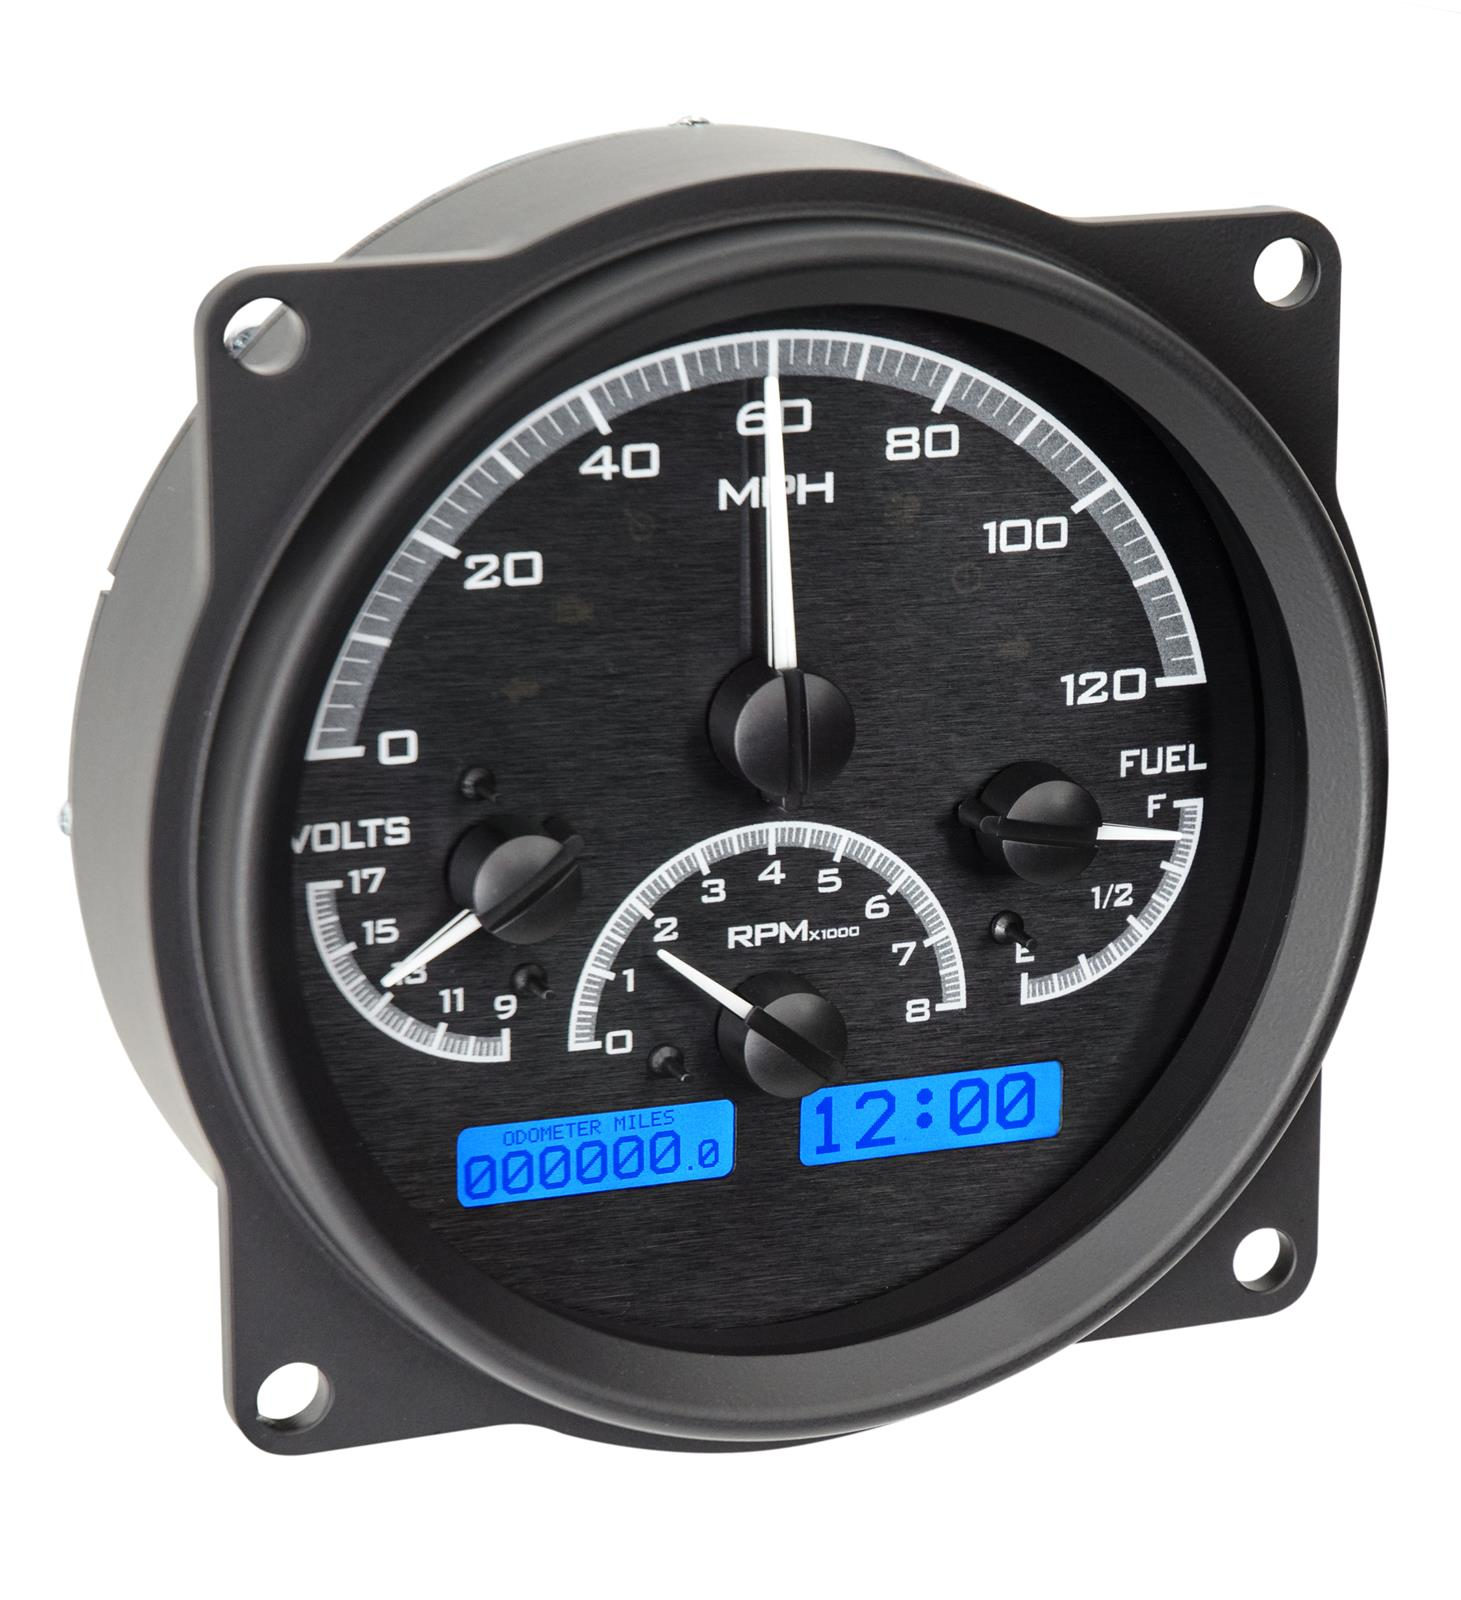 hight resolution of jeep cj7 dakota digital vhx series direct fit analog gauge systems vhx 55j k w free shipping on orders over 99 at summit racing